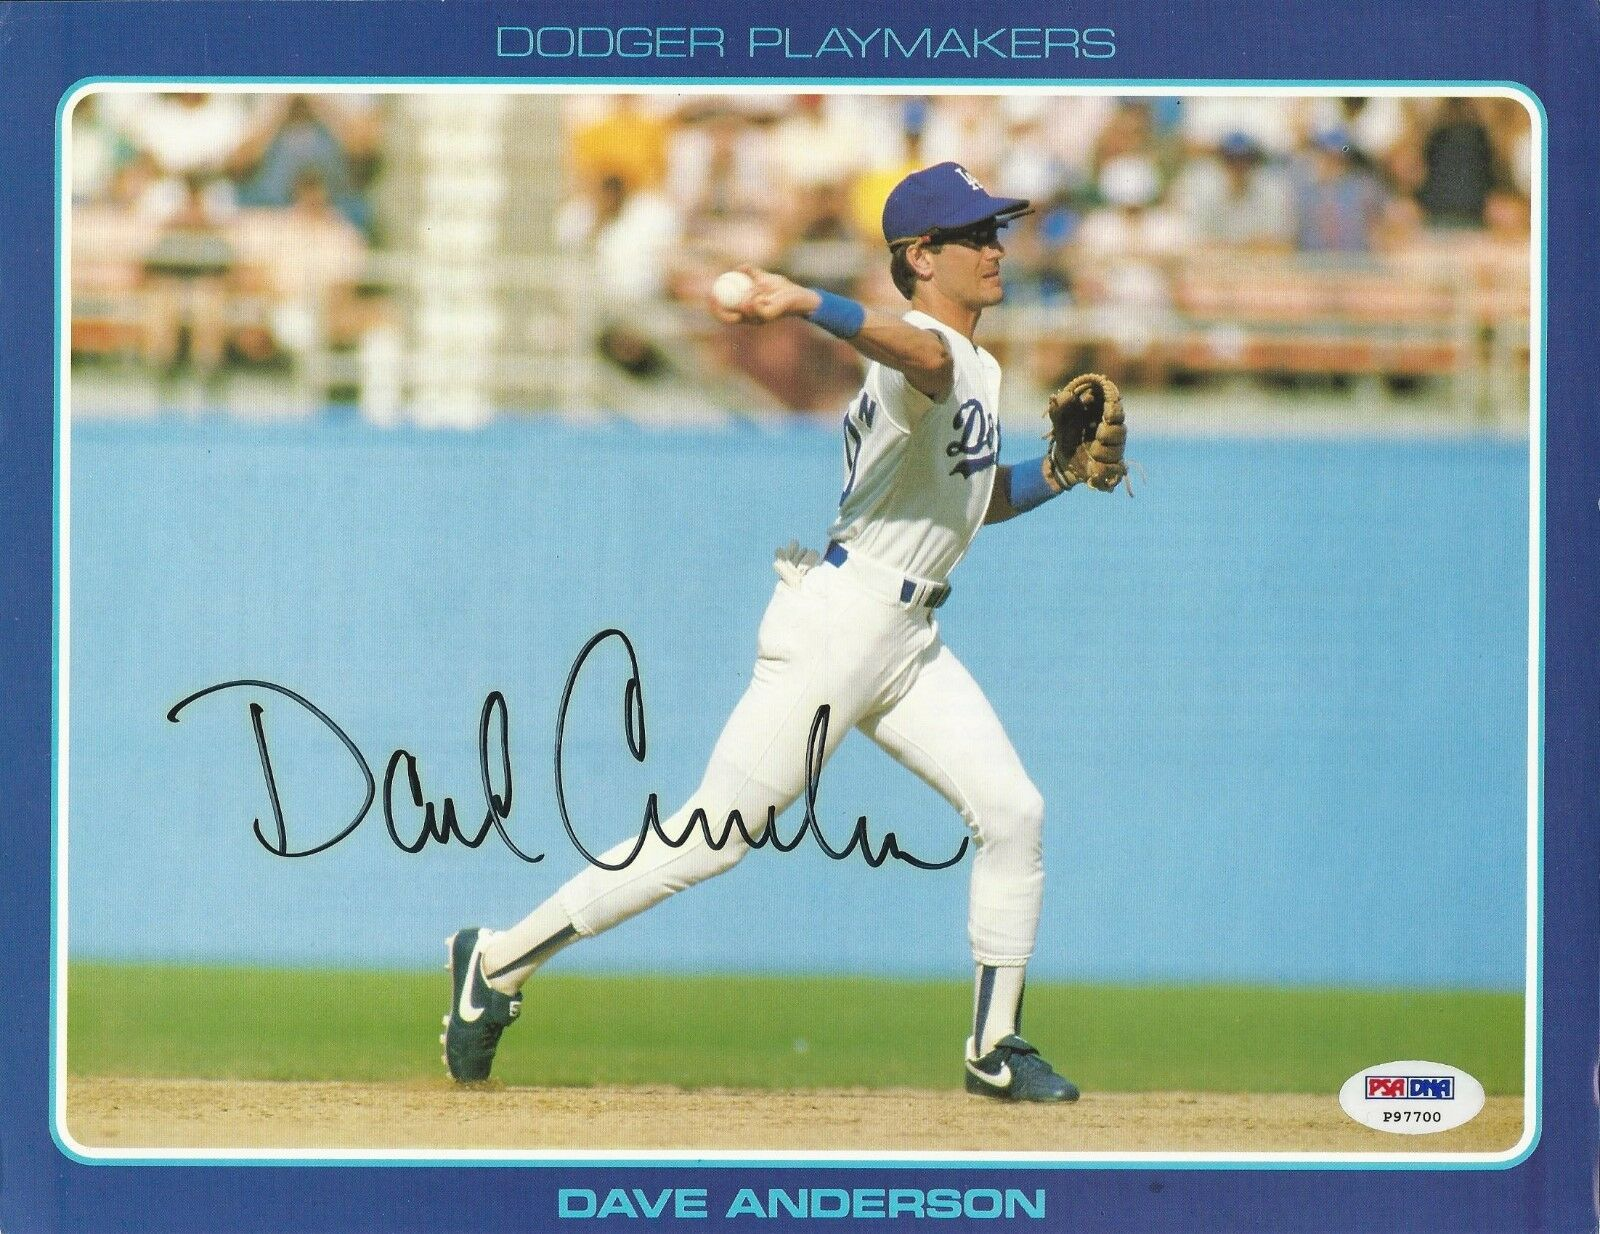 Dave Anderson Los Angeles Dodgers signed 8x10 photo PSA/DNA # P97700